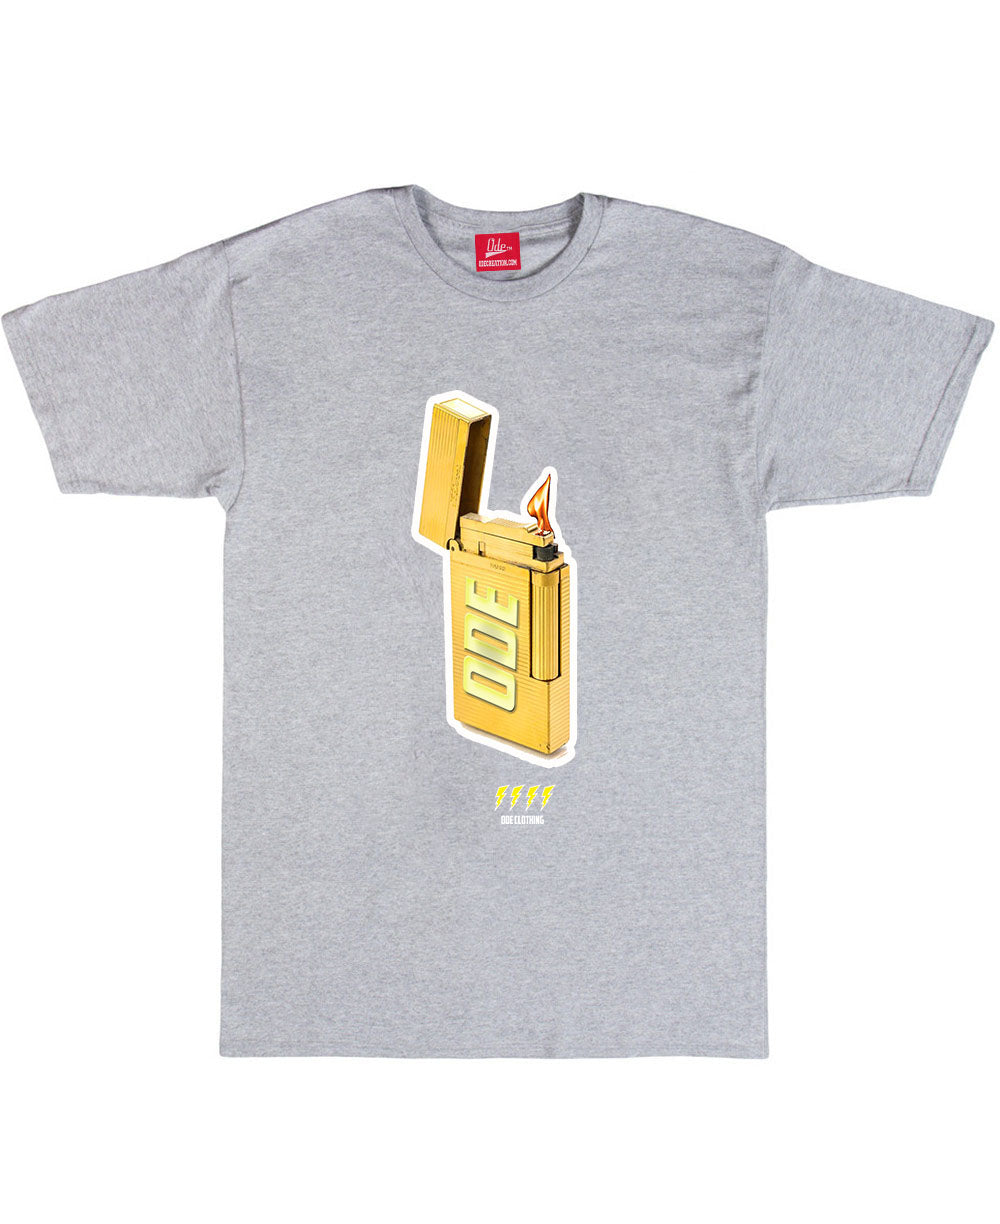 The Gold Lighter T-Shirt Grey